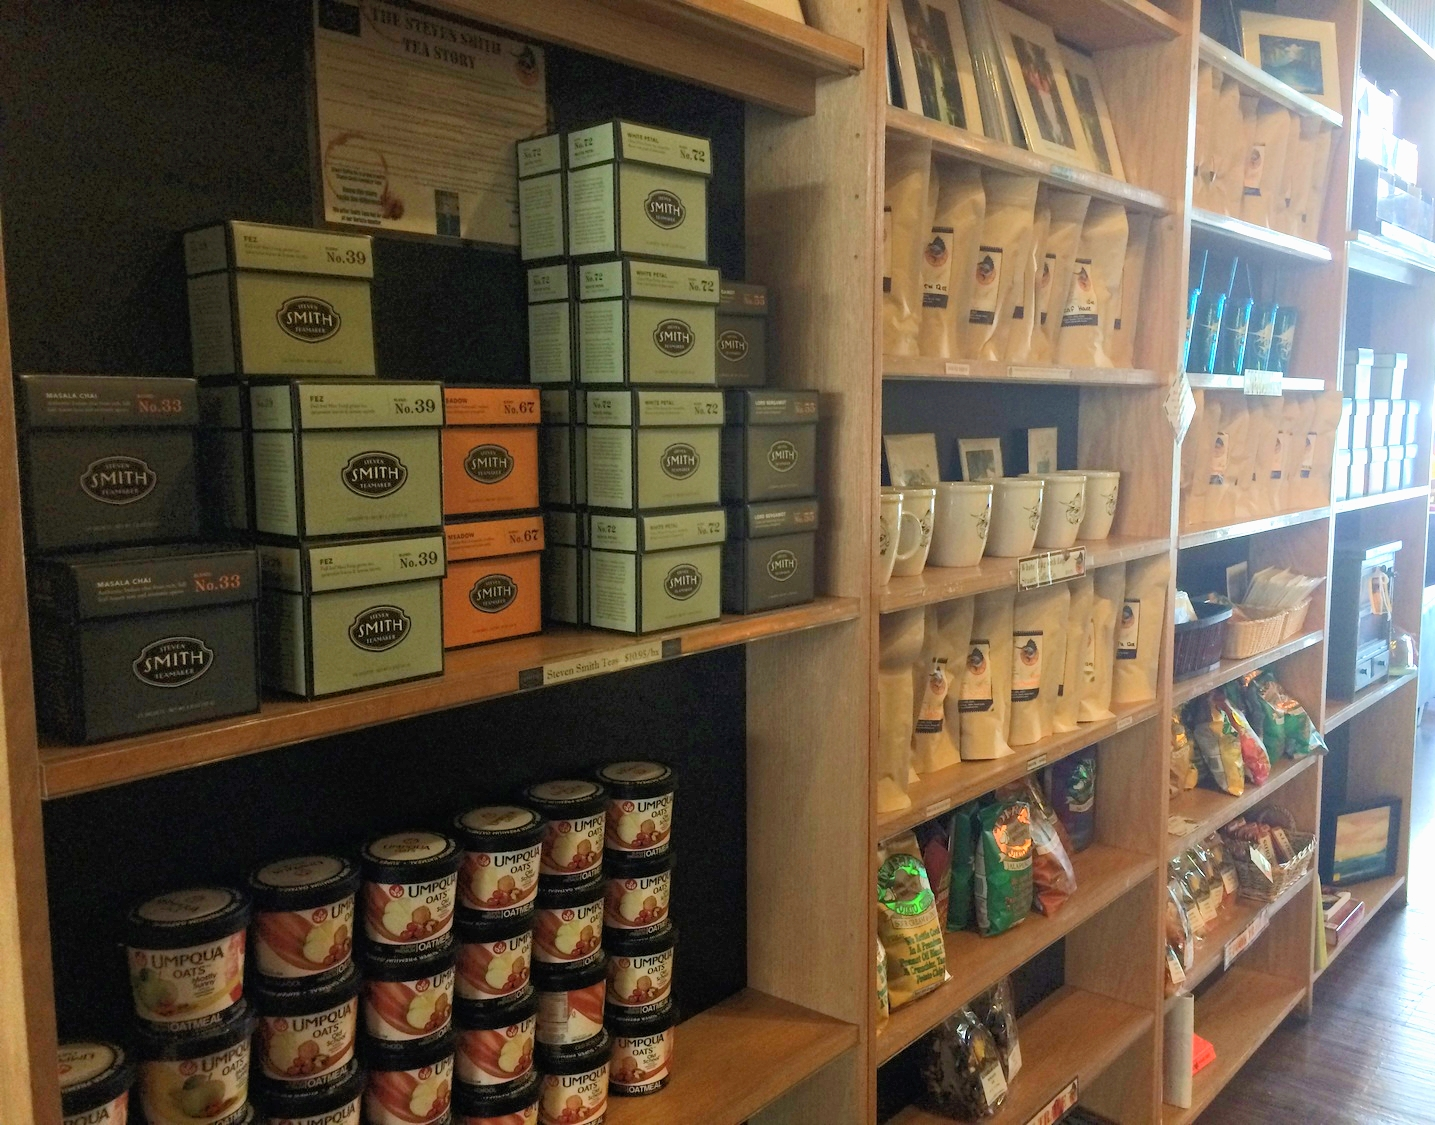 Wide selection of teas, coffees, snacks and gifts